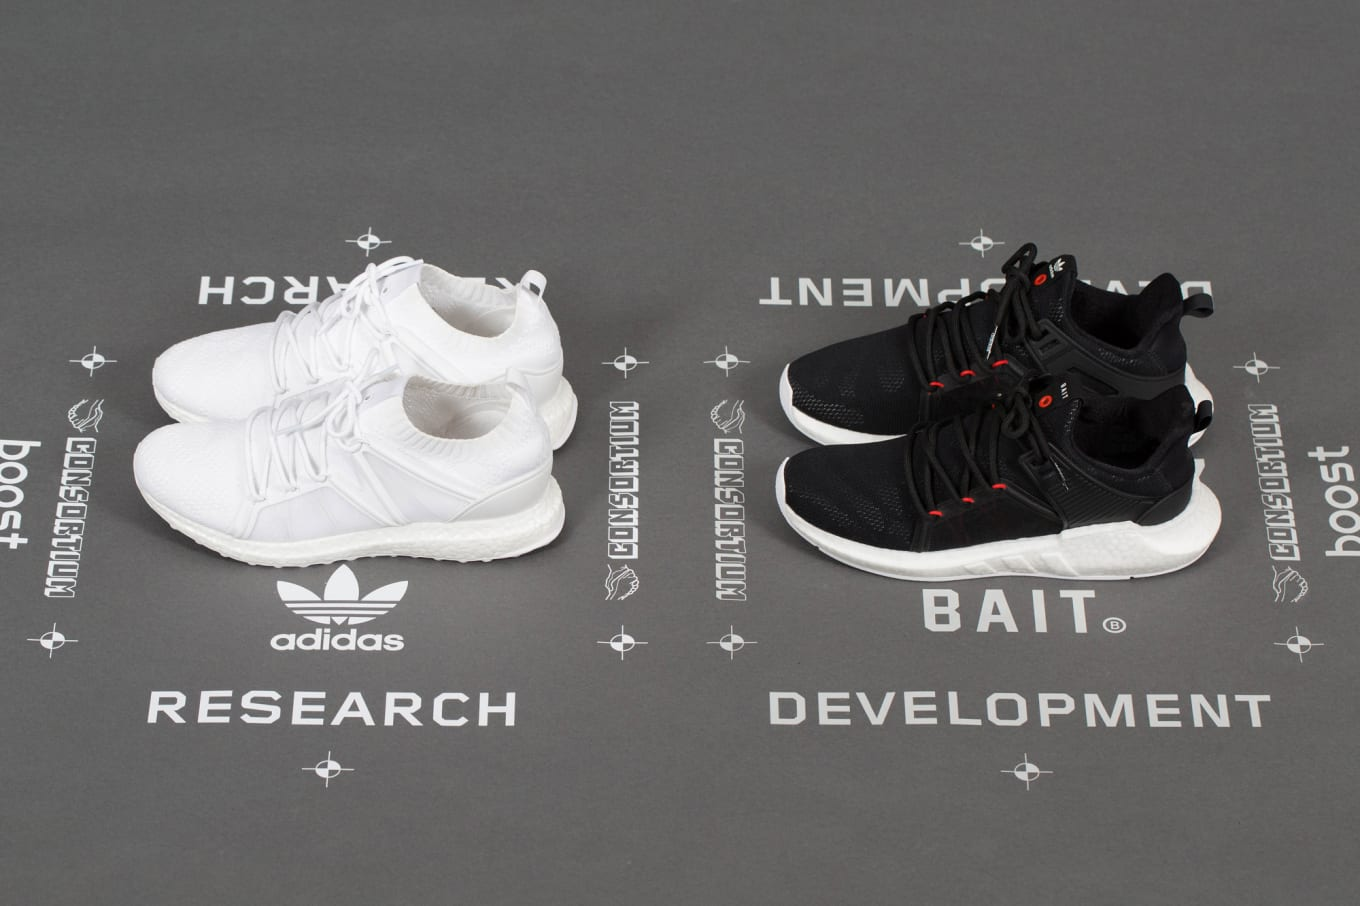 909ca7bd5 Bait x Adidas  R D  pack releasing on Aug. 26.